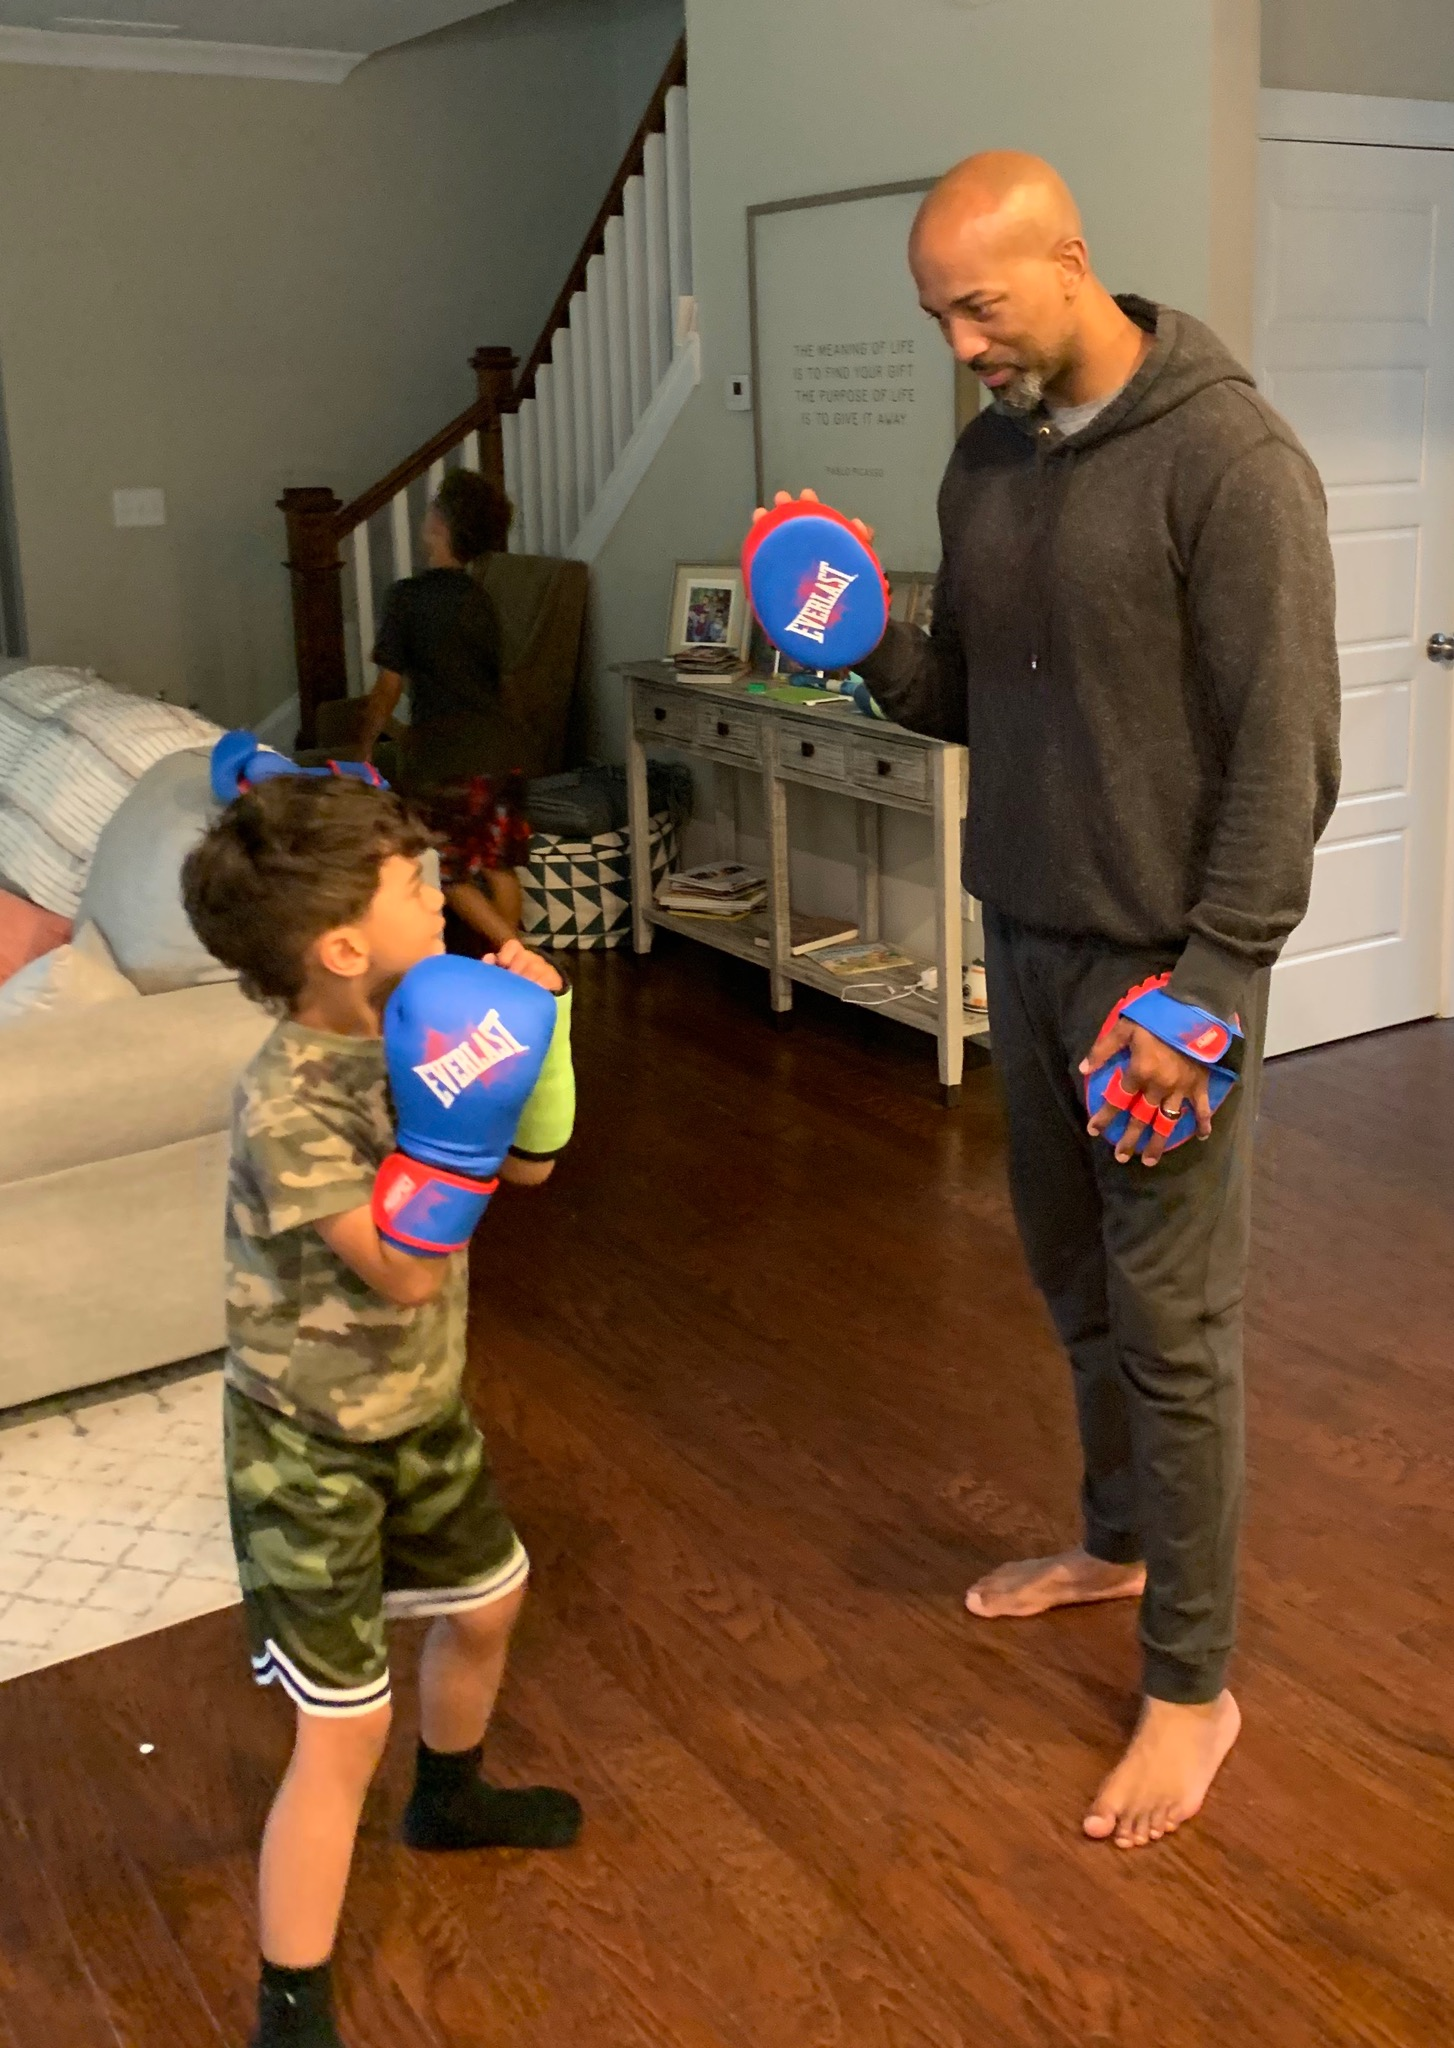 Charles Payne and his son boxing in the living room